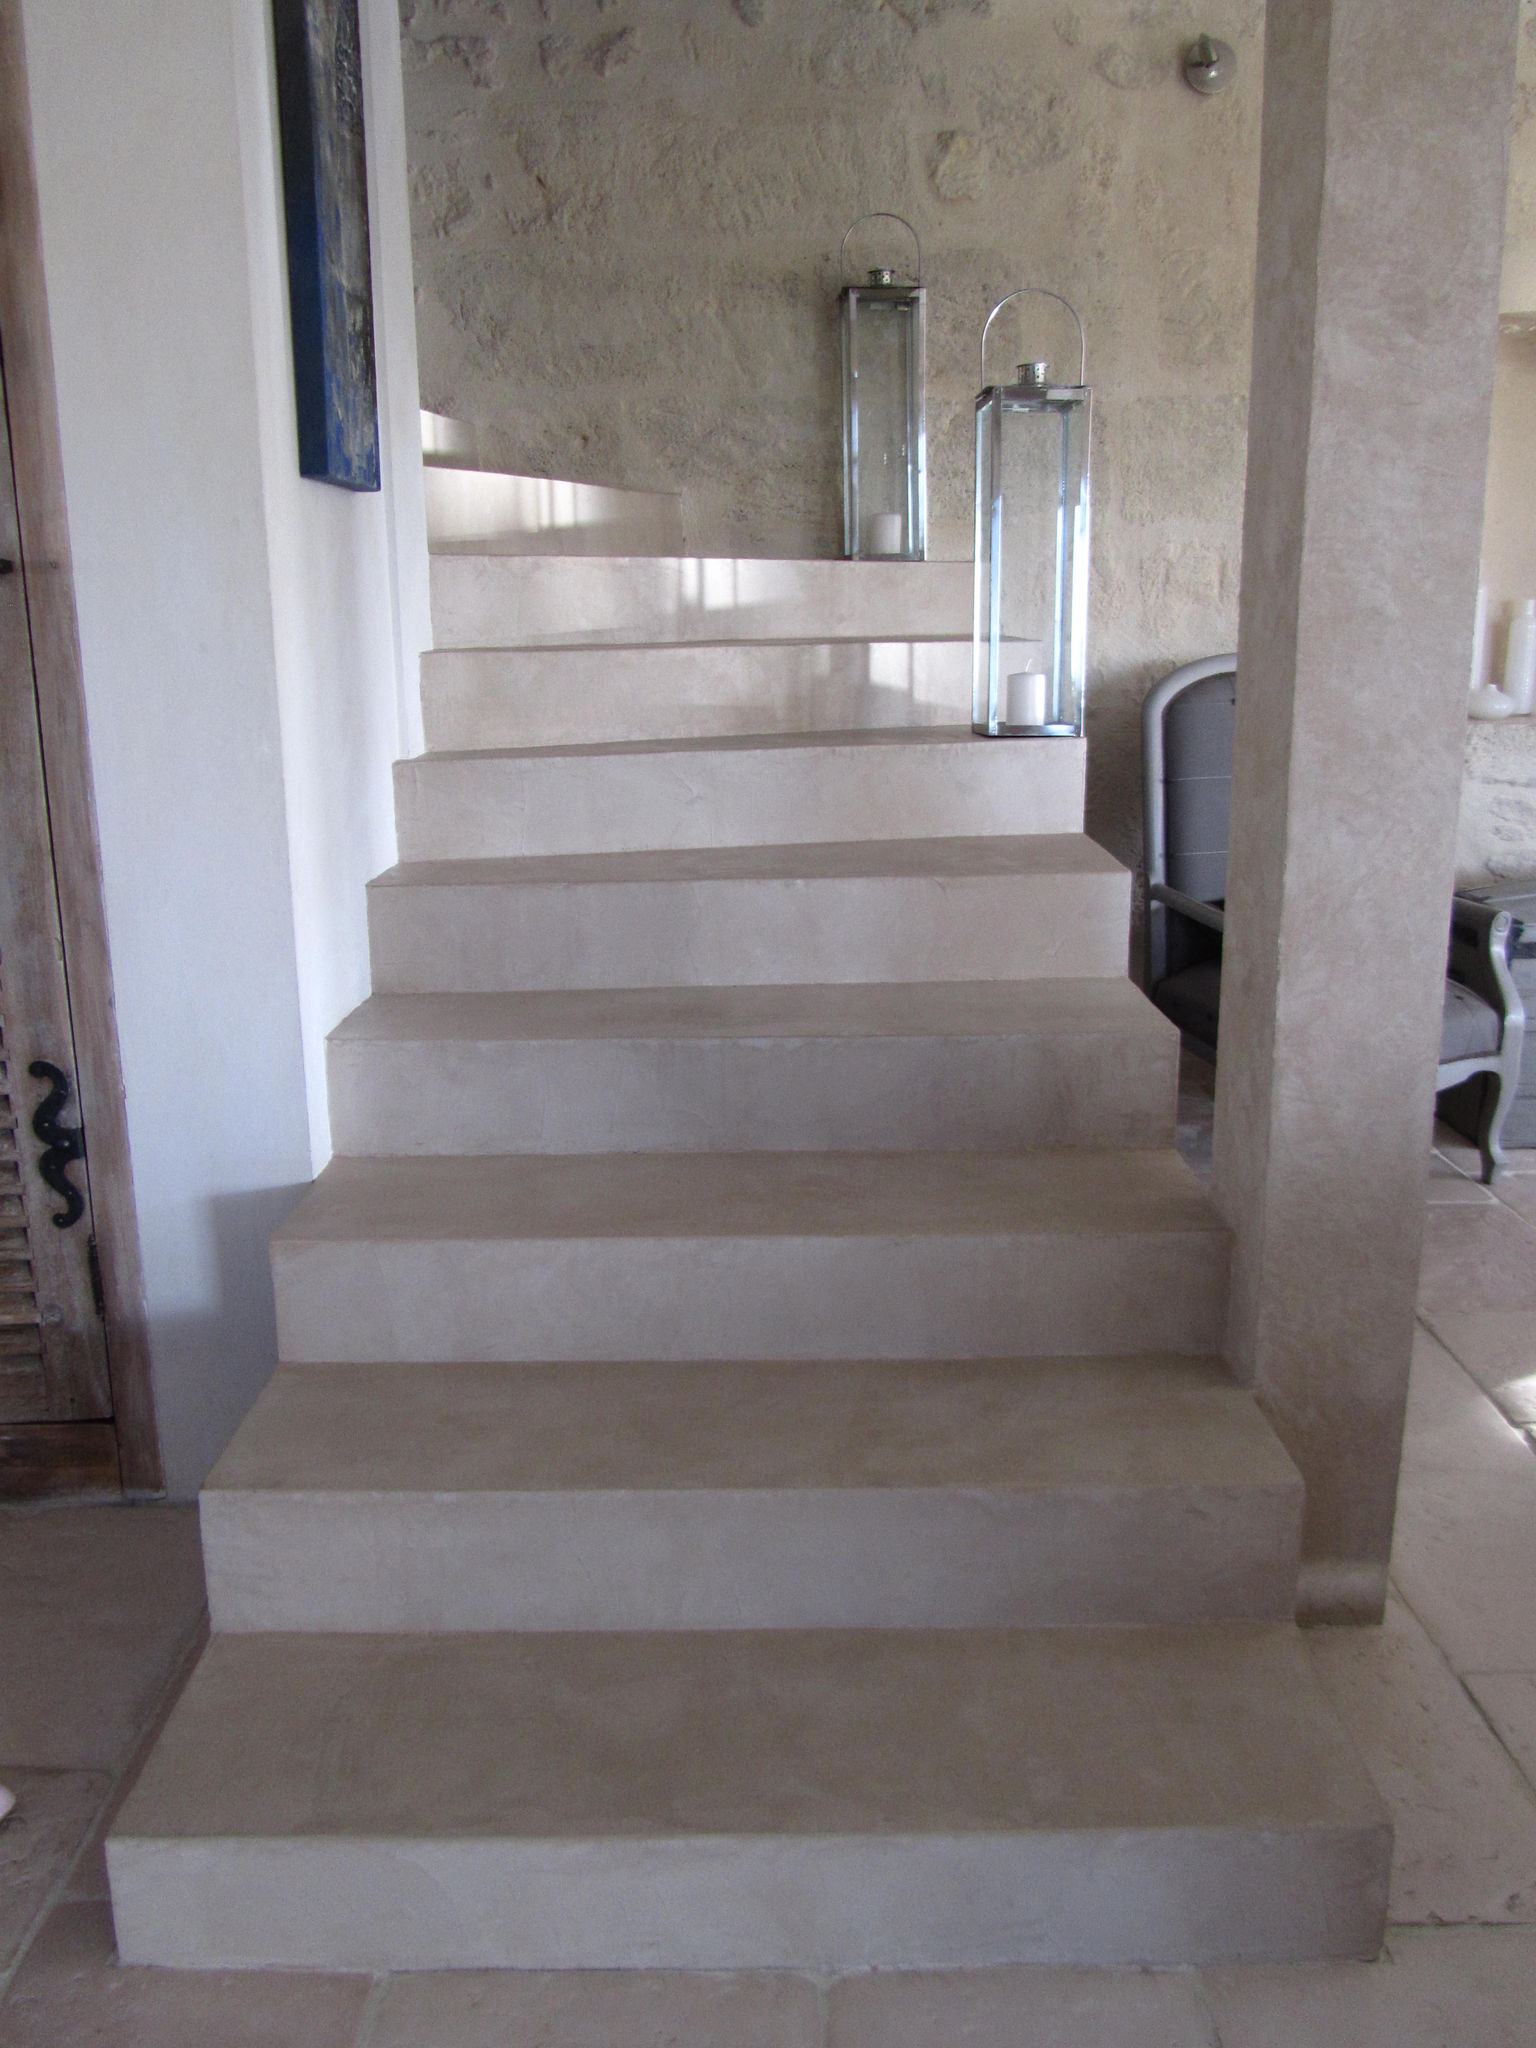 escalier en beton cire couleur pierre photo de beton cire catherine pendanx. Black Bedroom Furniture Sets. Home Design Ideas